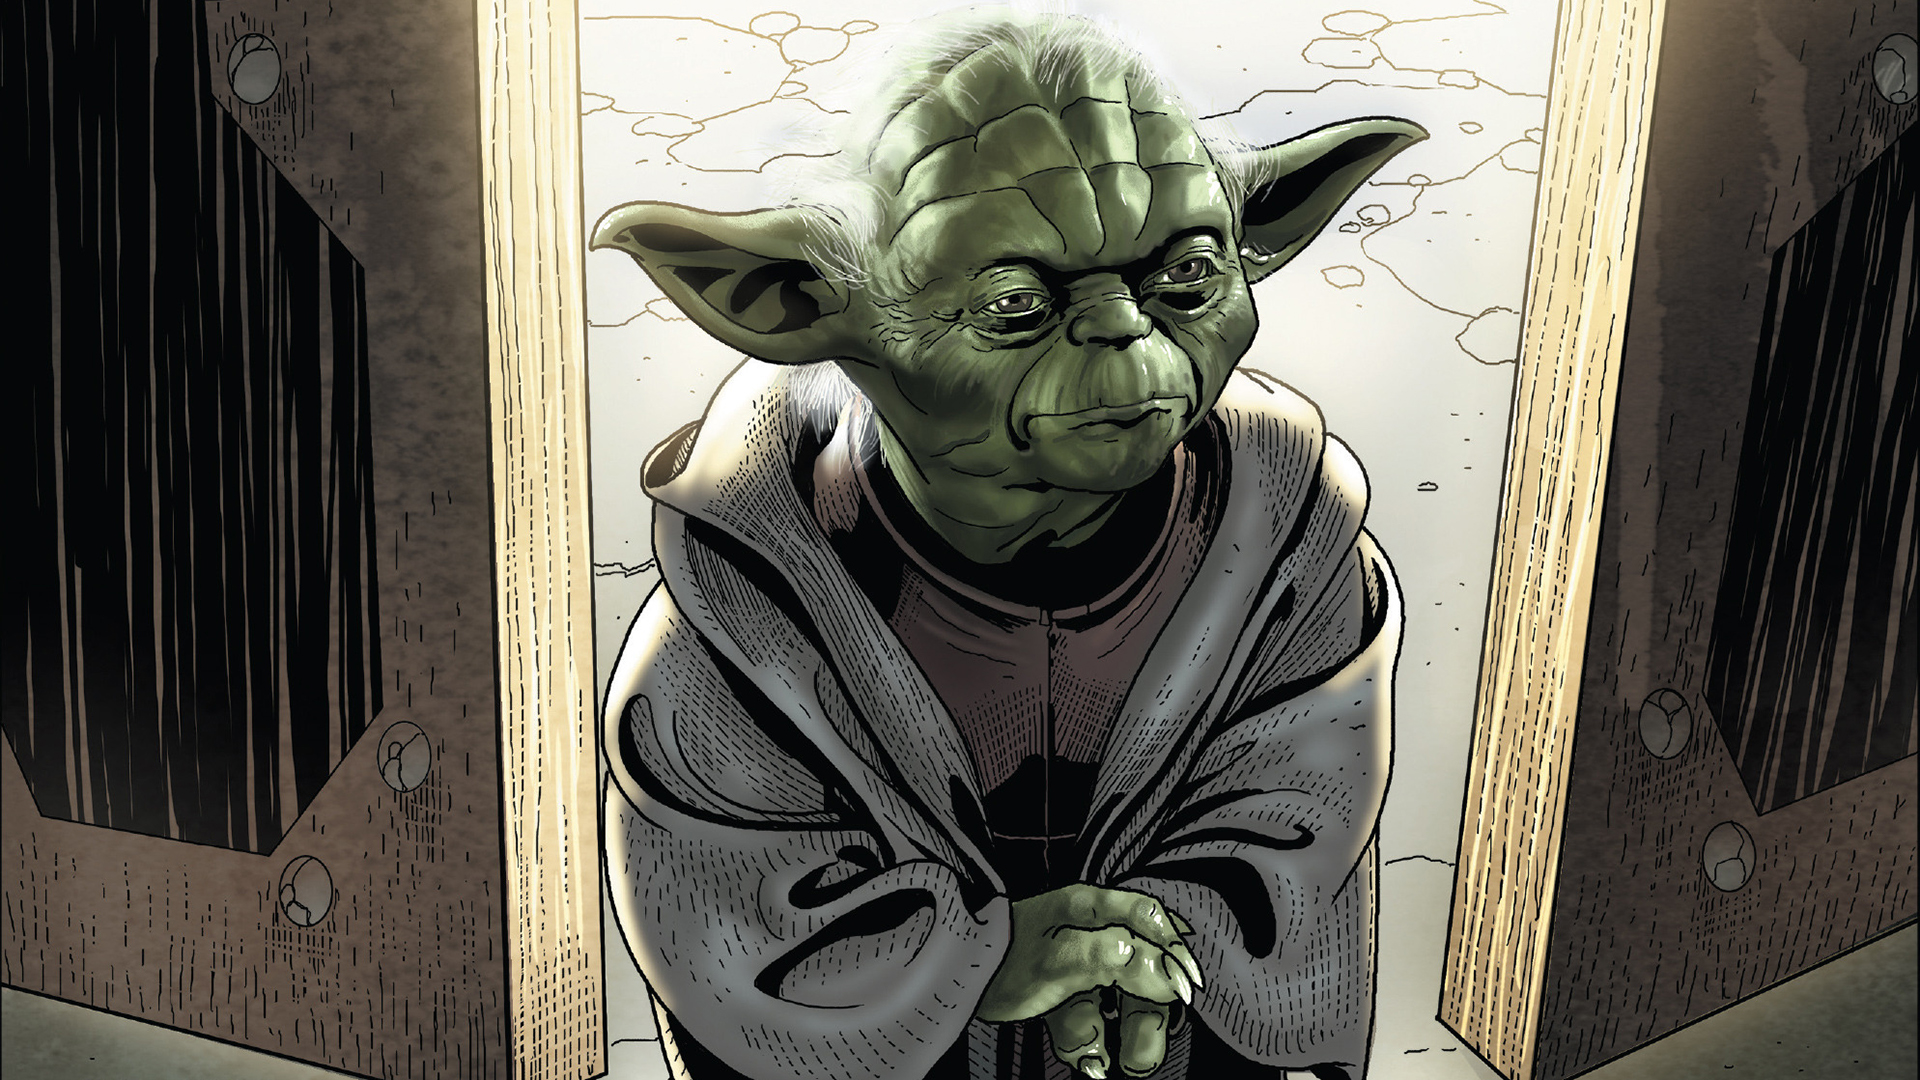 Master Yoda Hd Wallpaper Background Image 1920x1080 Id 871621 Wallpaper Abyss